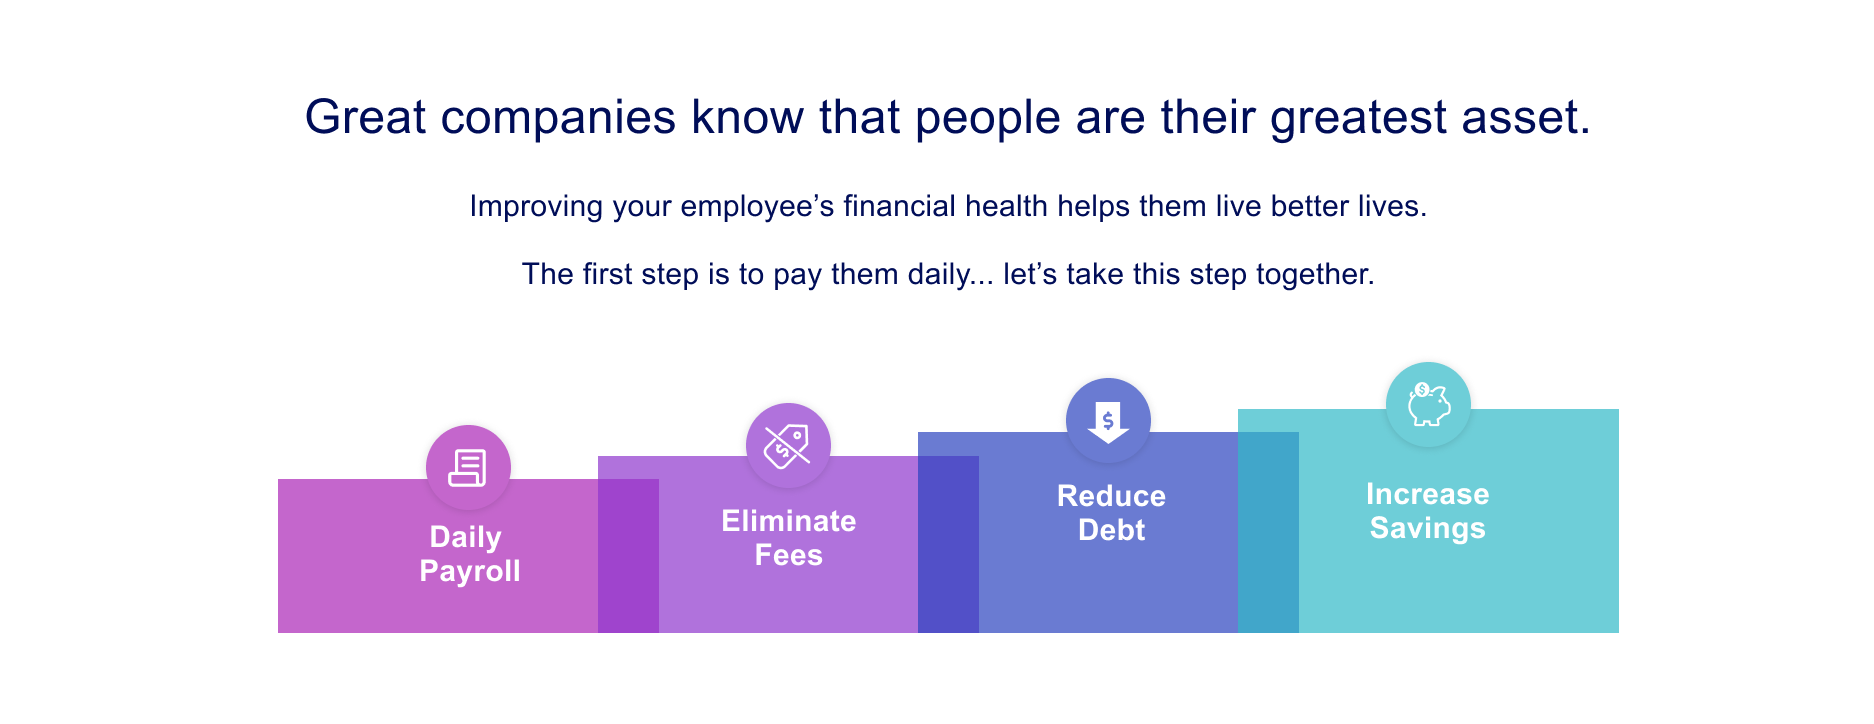 Great companies know that people are their greatest asset.